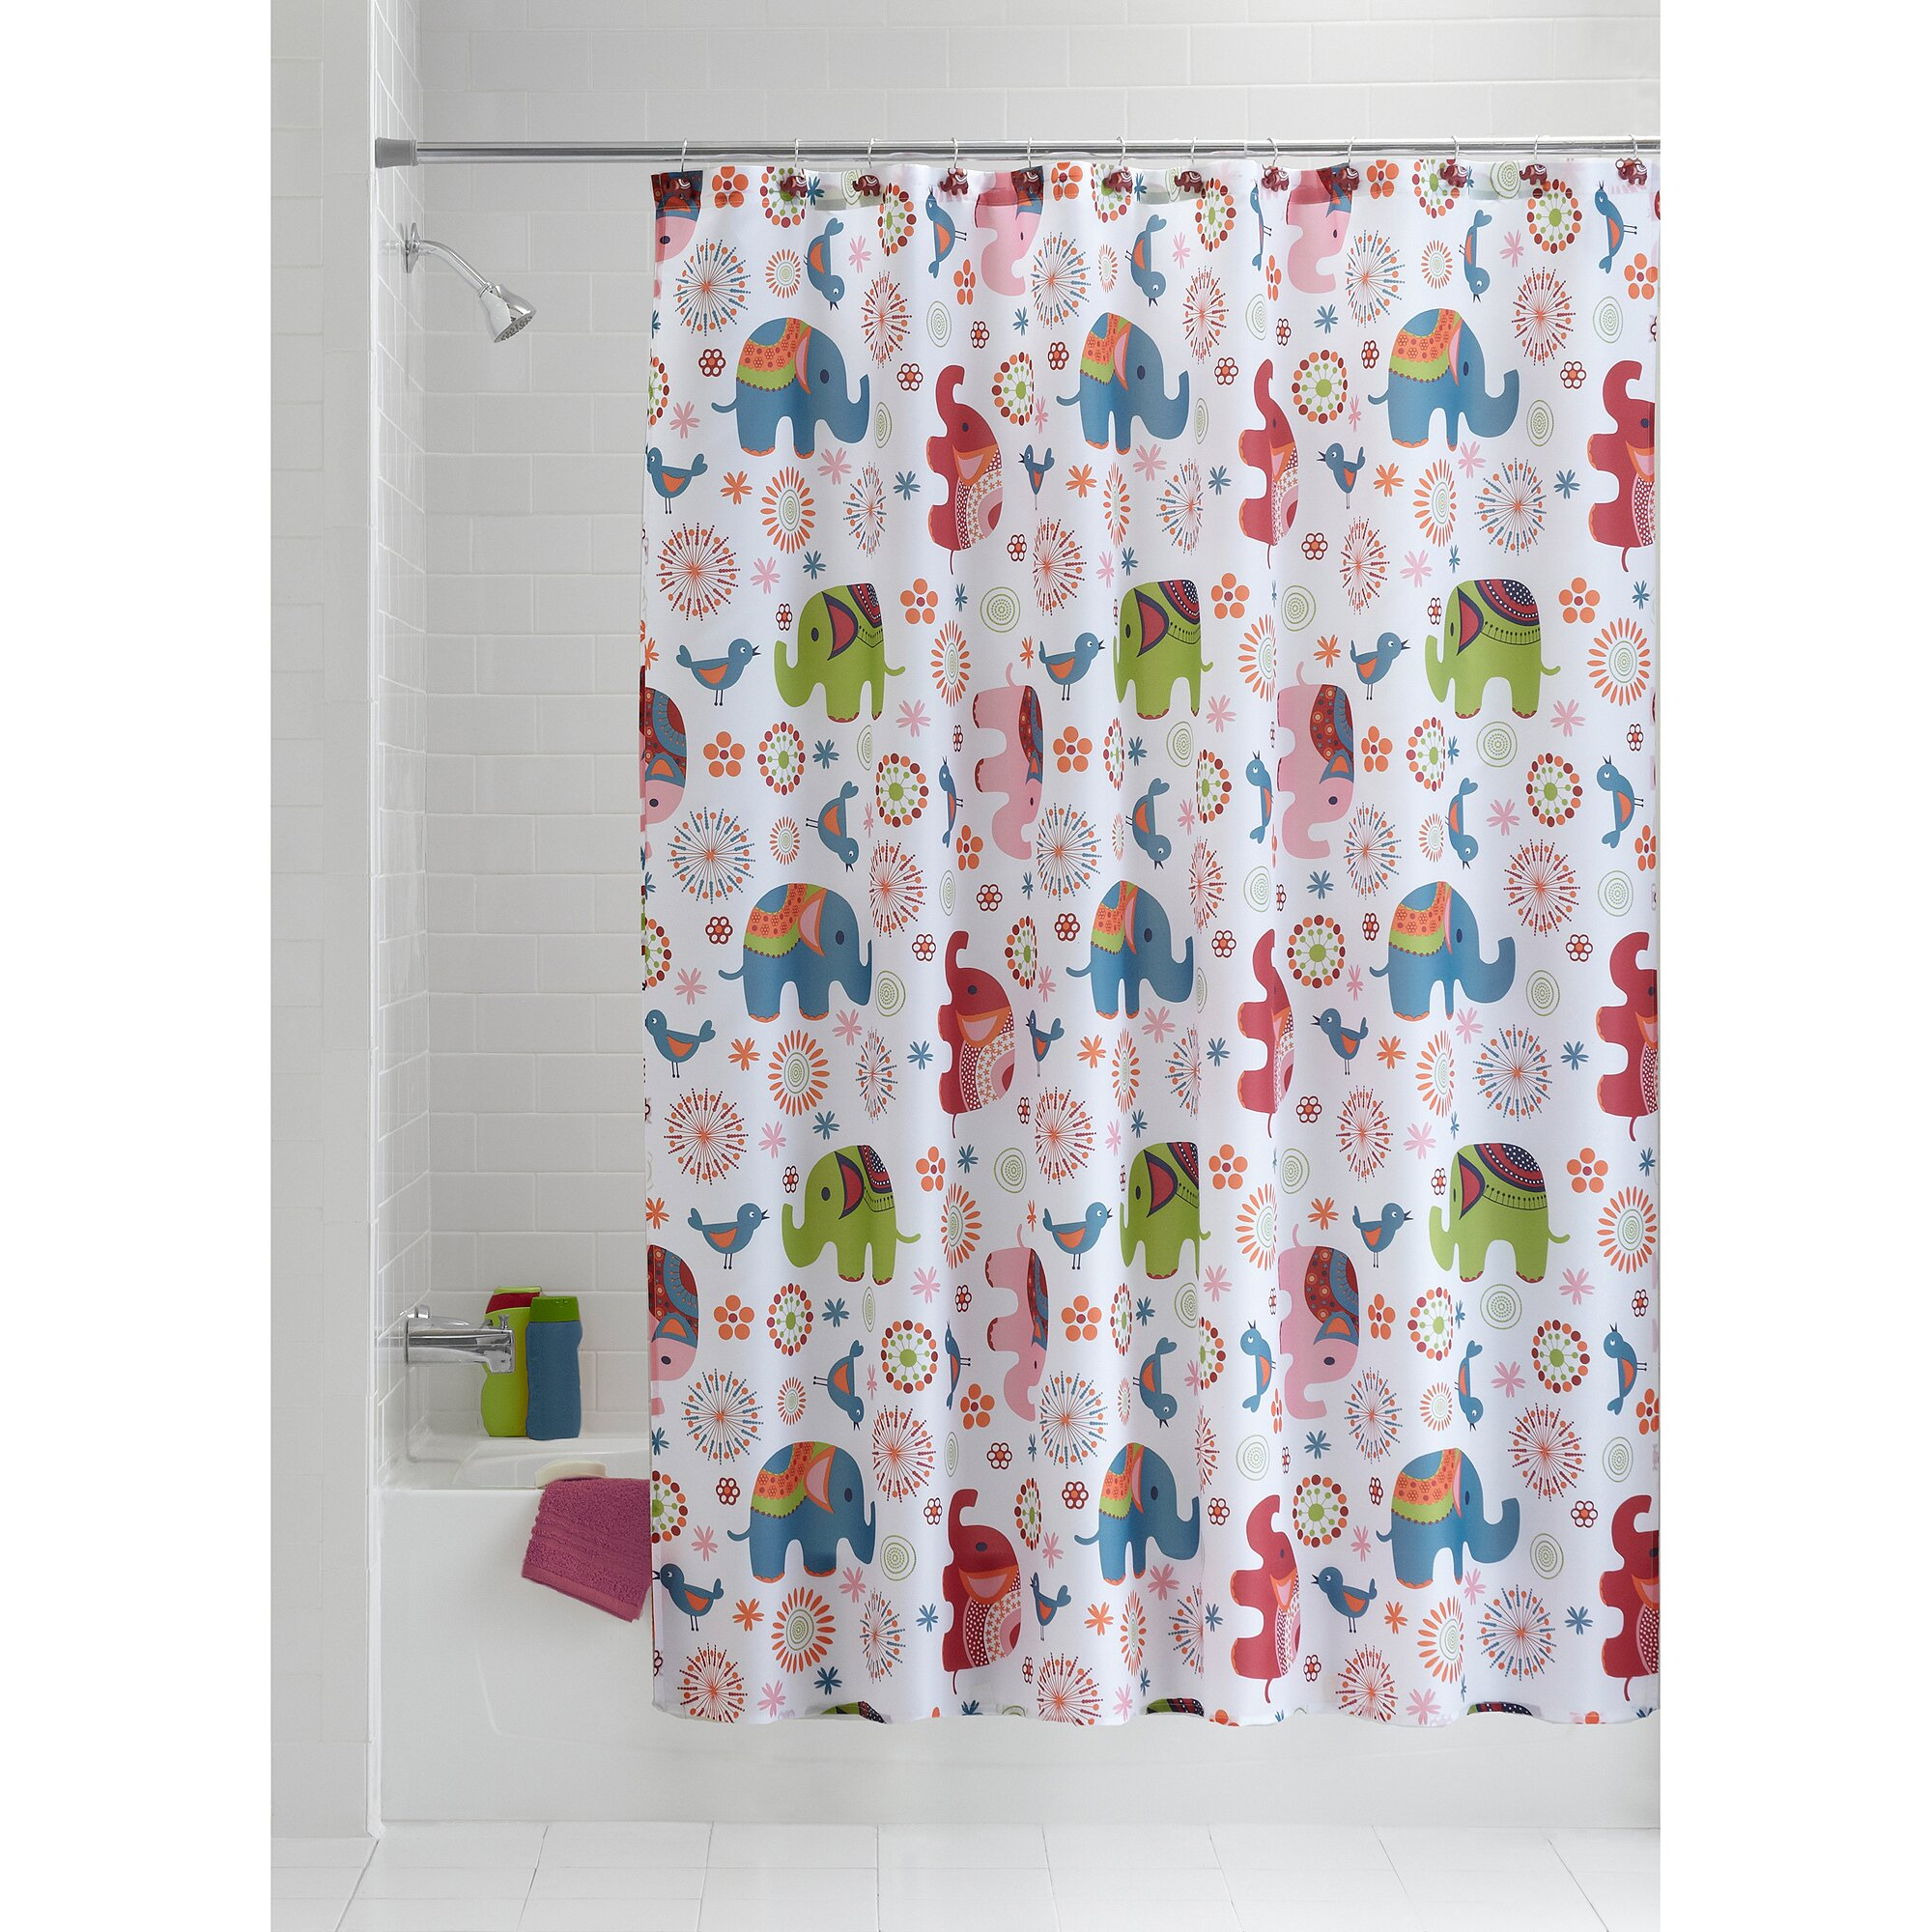 Paris Shower Curtain Walmart | Shower Curtain Liner Dimensions | Walmart Shower  Curtain